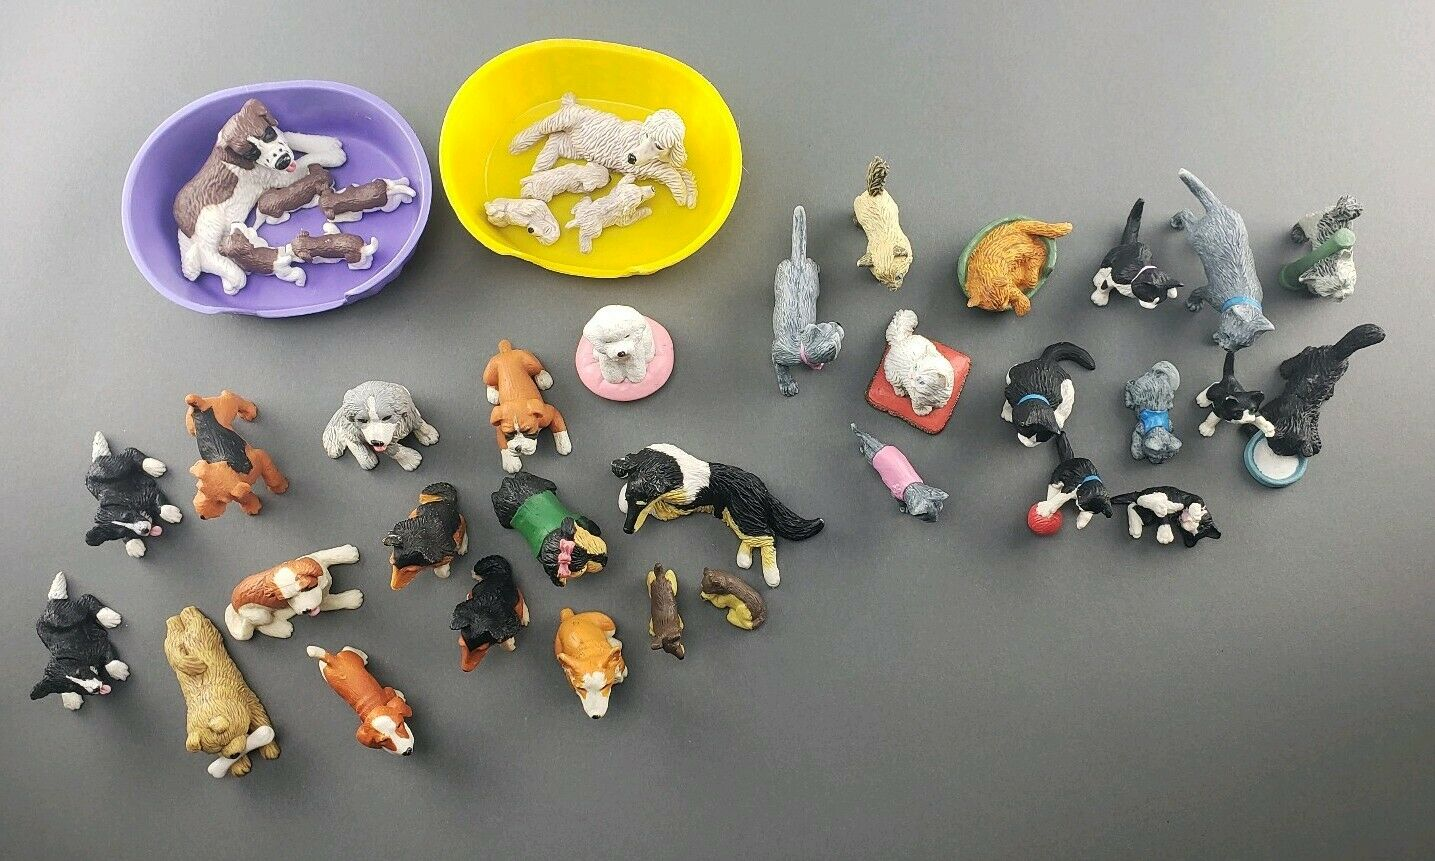 1994 95 M.E.G. MEG Toy Cat Puppy Kitty in My Pocket PVC Figures 39 lot